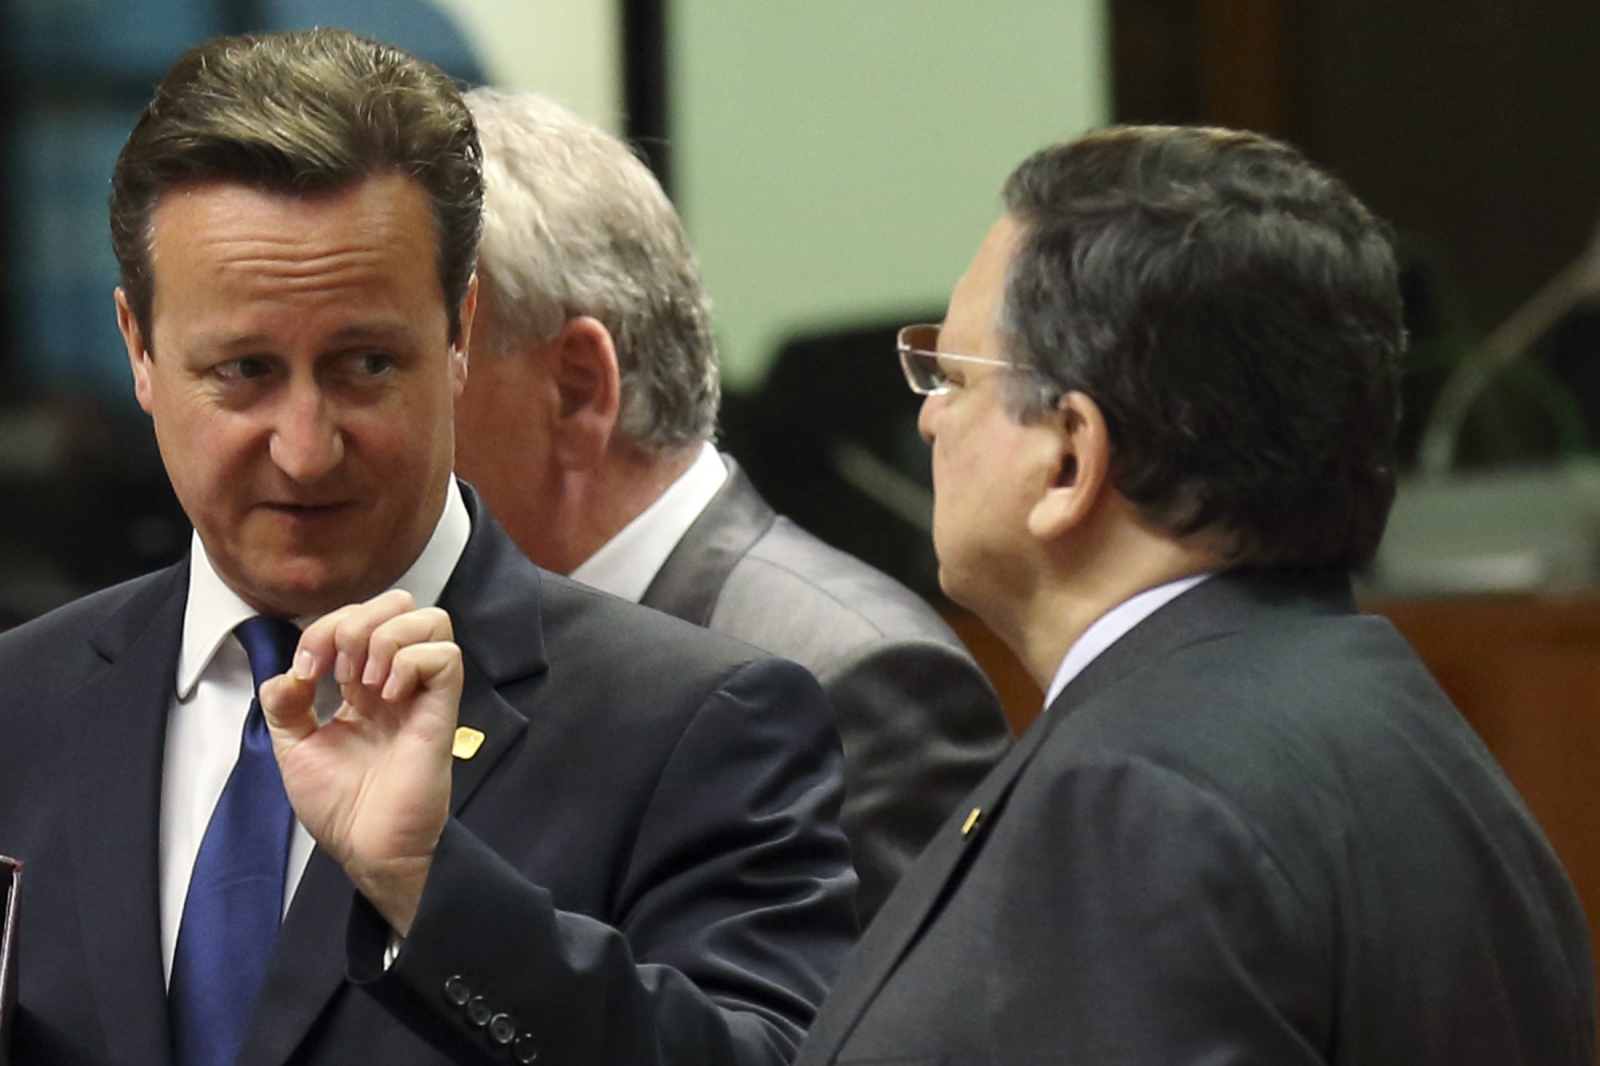 Britain's Prime Minister David Cameron (L) talks to European Commission President Jose Manuel Barroso during a European Union leaders summit in Brussels